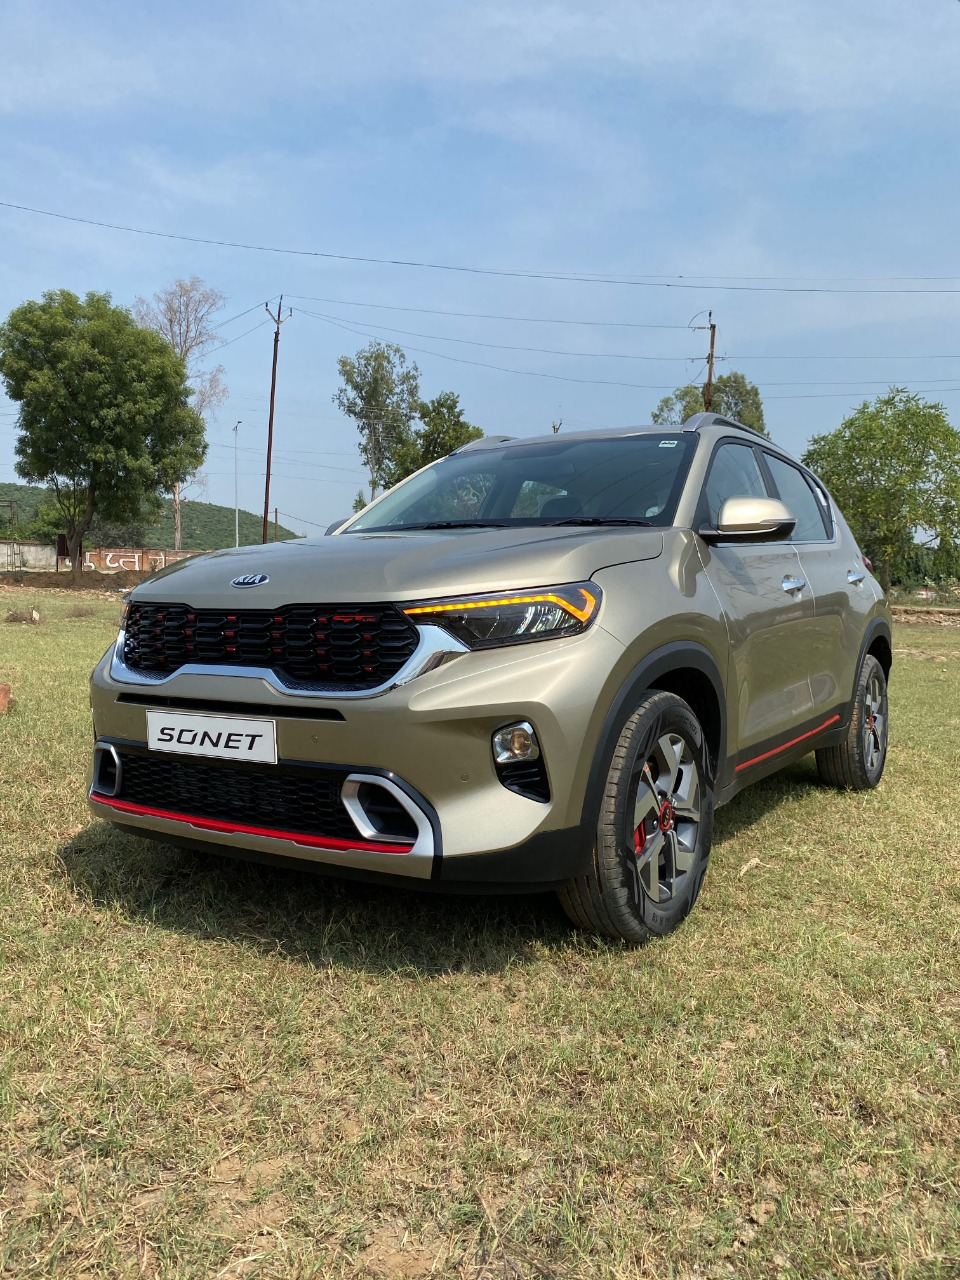 Kia Sonet Gt Line T Gdi 2020 Review Specs And Details In Hindi Namastecar